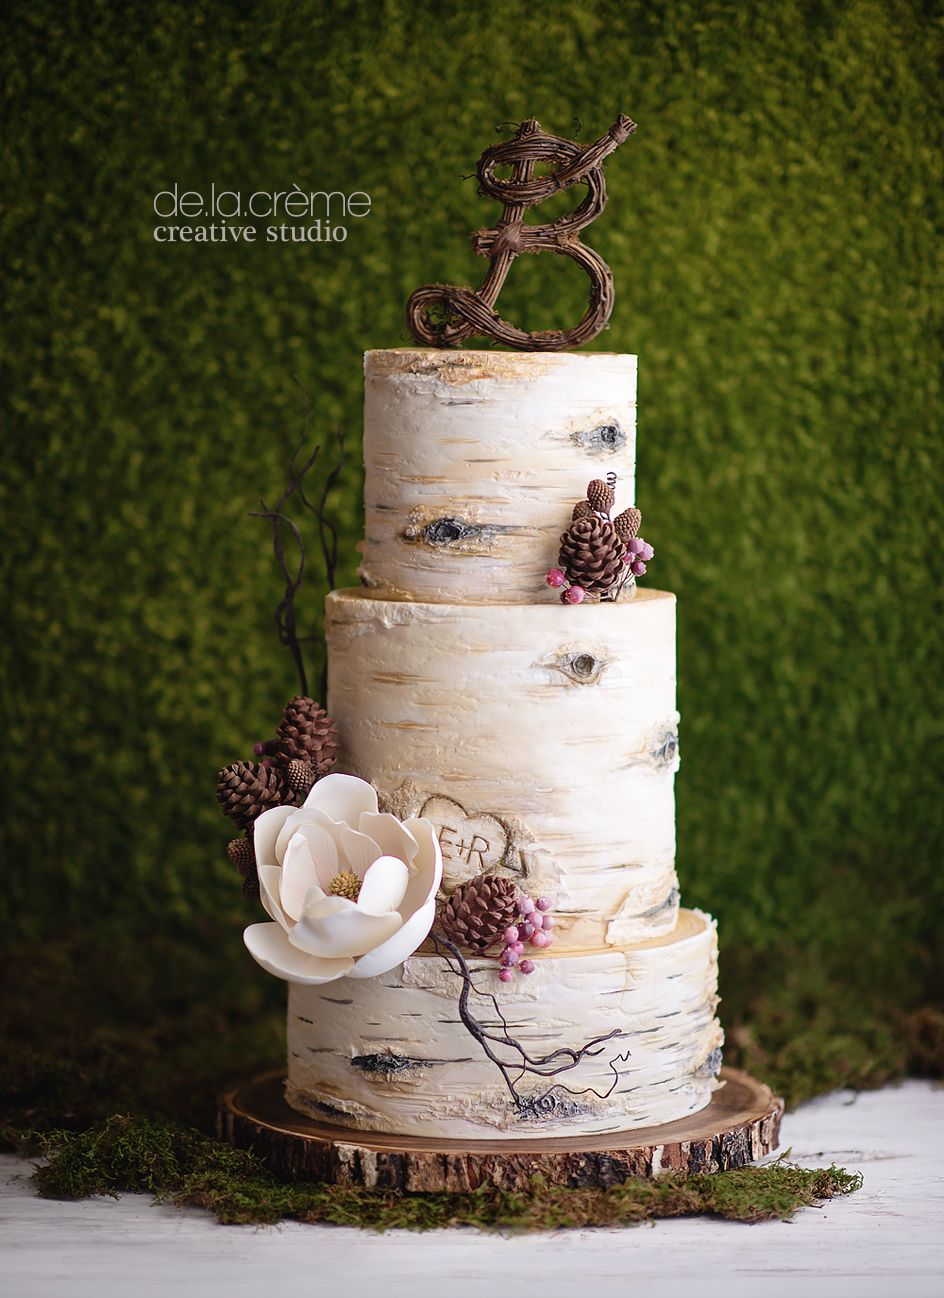 birch tree wedding cake wedding cake frosting french vanilla cake and vanilla buttercream. Black Bedroom Furniture Sets. Home Design Ideas